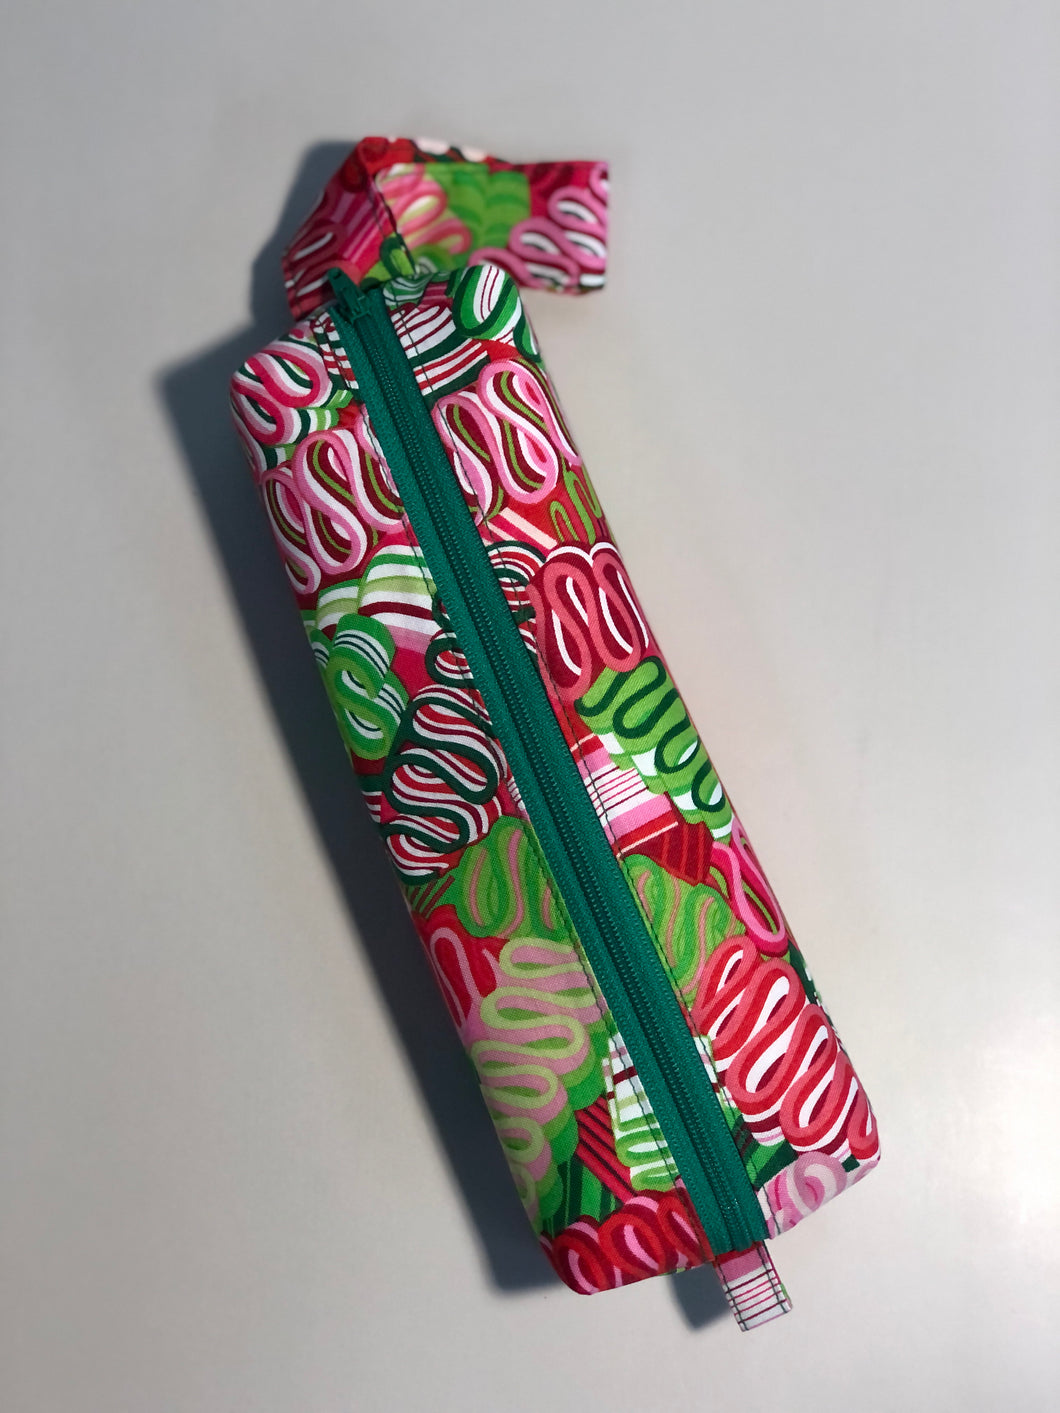 Notion Bag/Pencil Case - Ribbon Candy